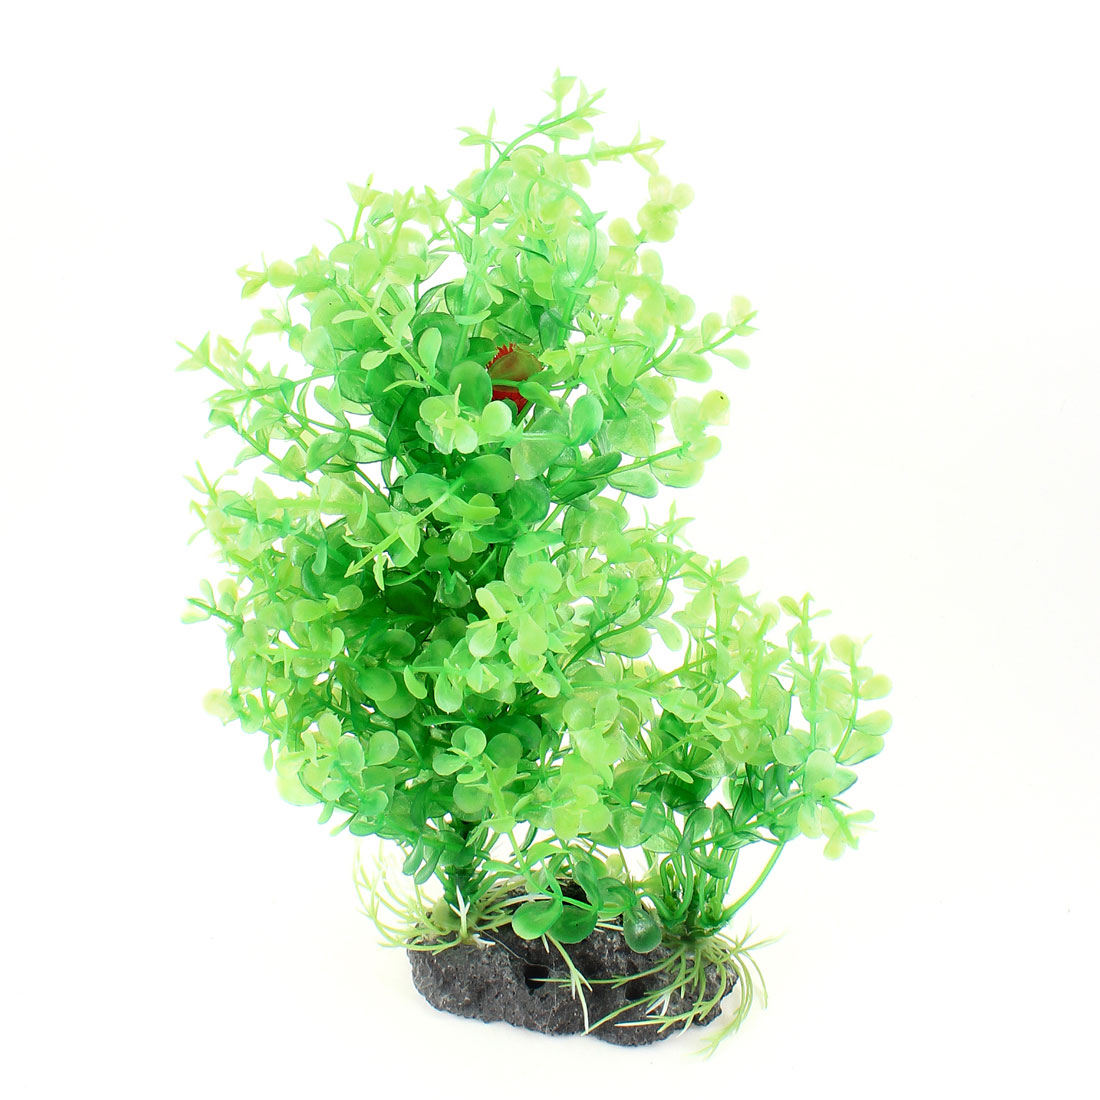 "Emulational Grass Water Plant Aquarium 8.9"" Height Decor for Fish Tank"